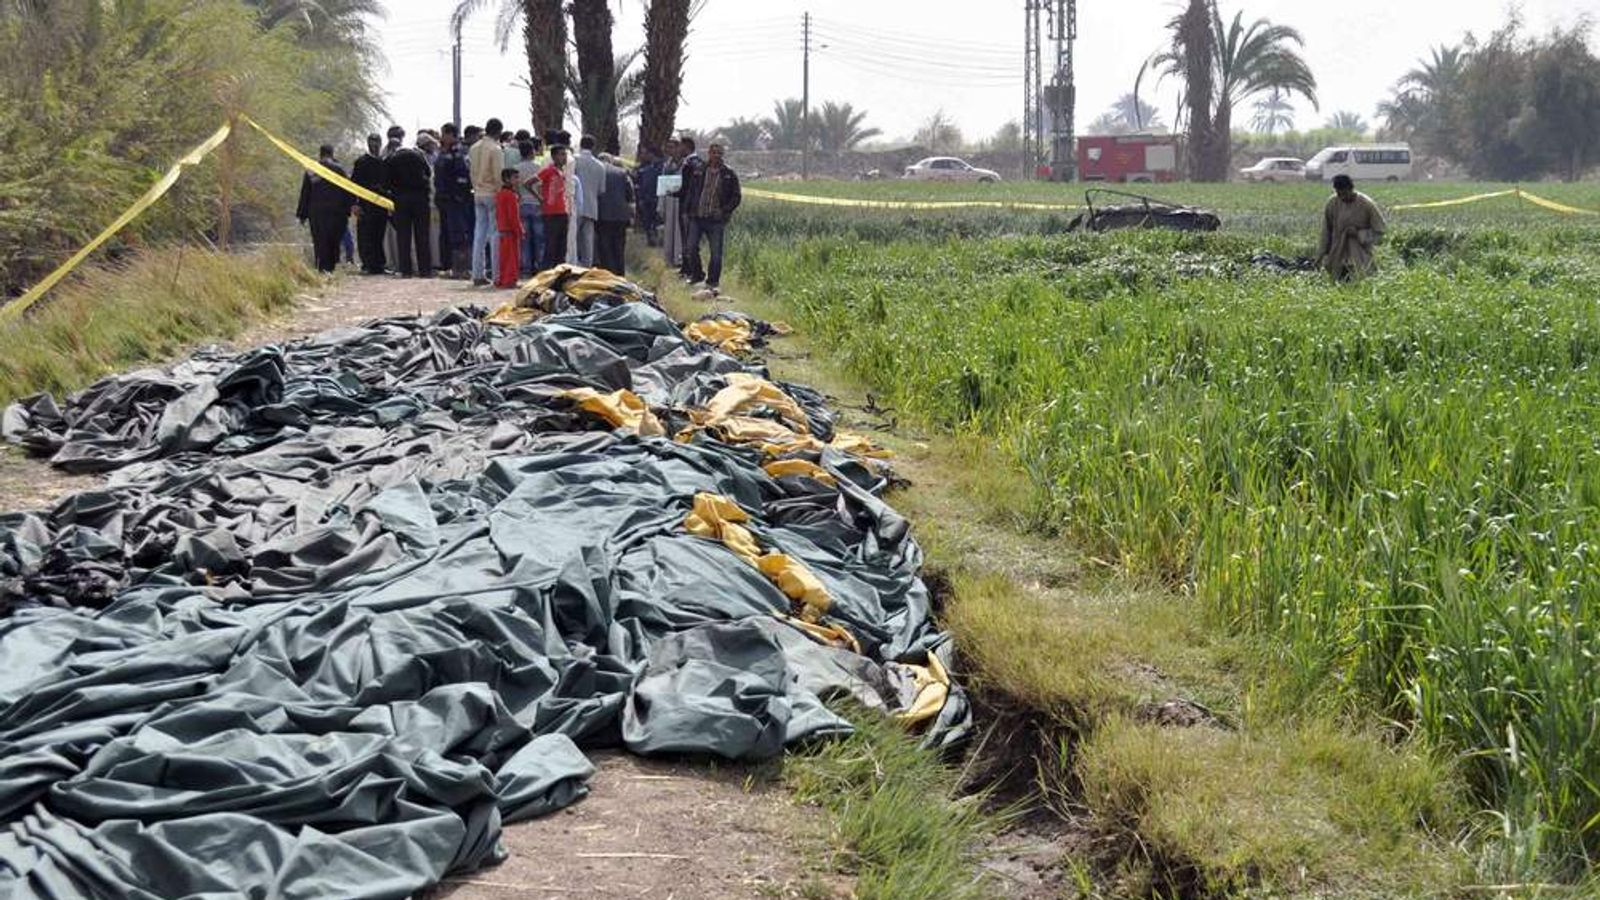 Deadly Balloon Crash In Egypt